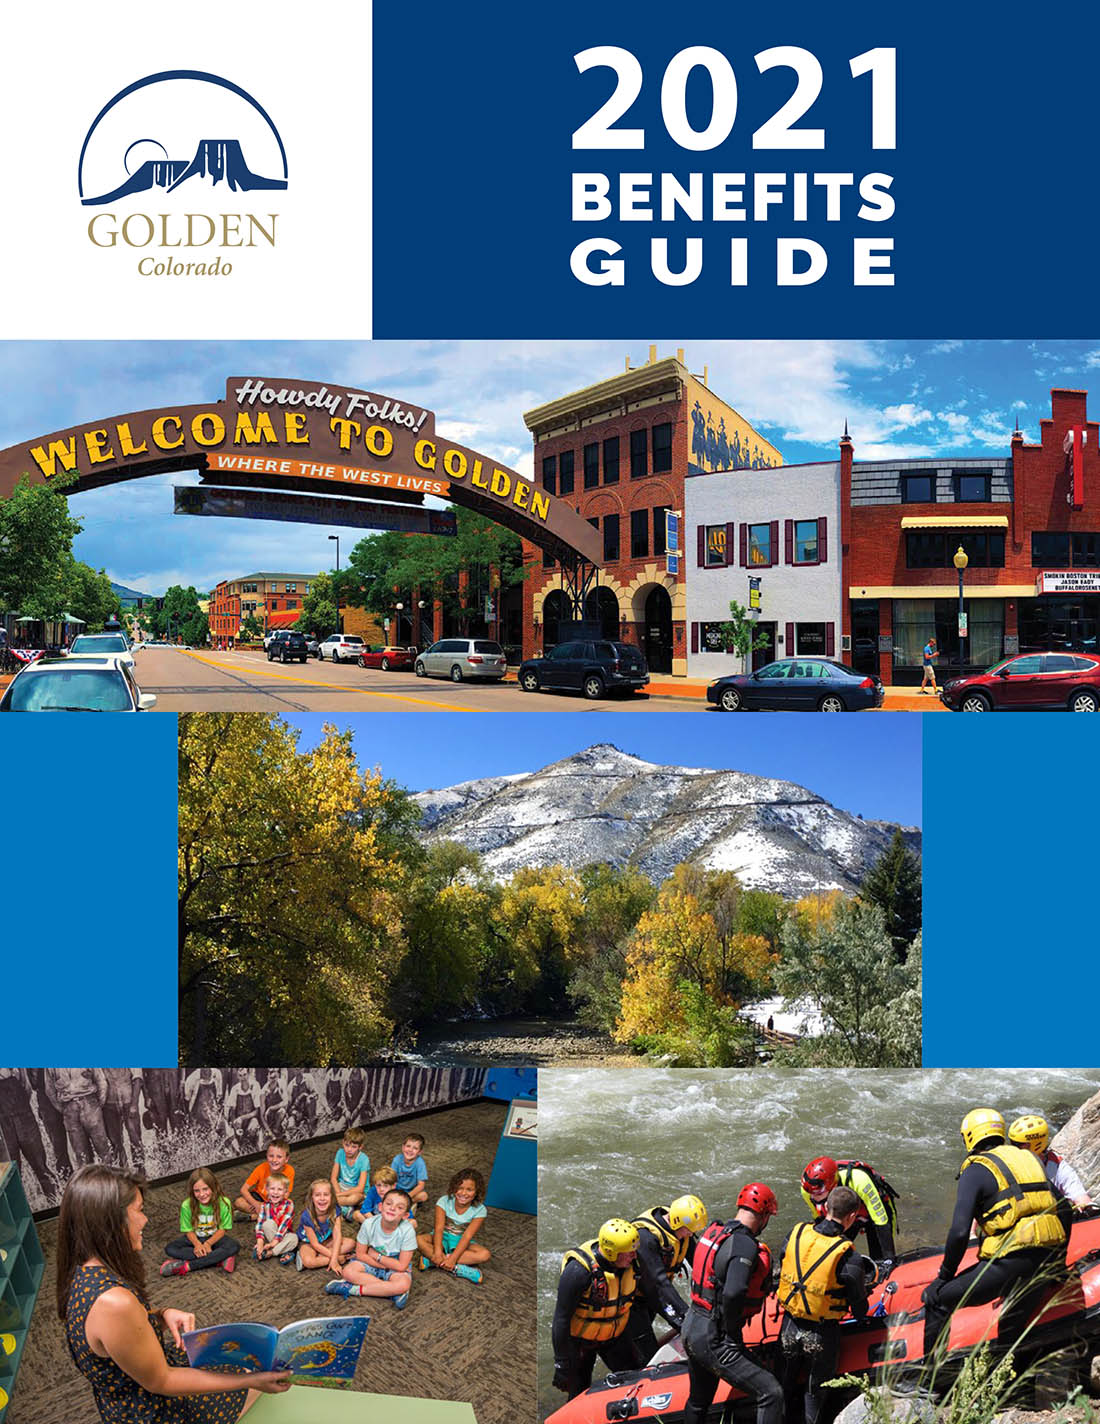 2021 Benefits Enrollment Guide front cover with a collage of images of Golden scenery